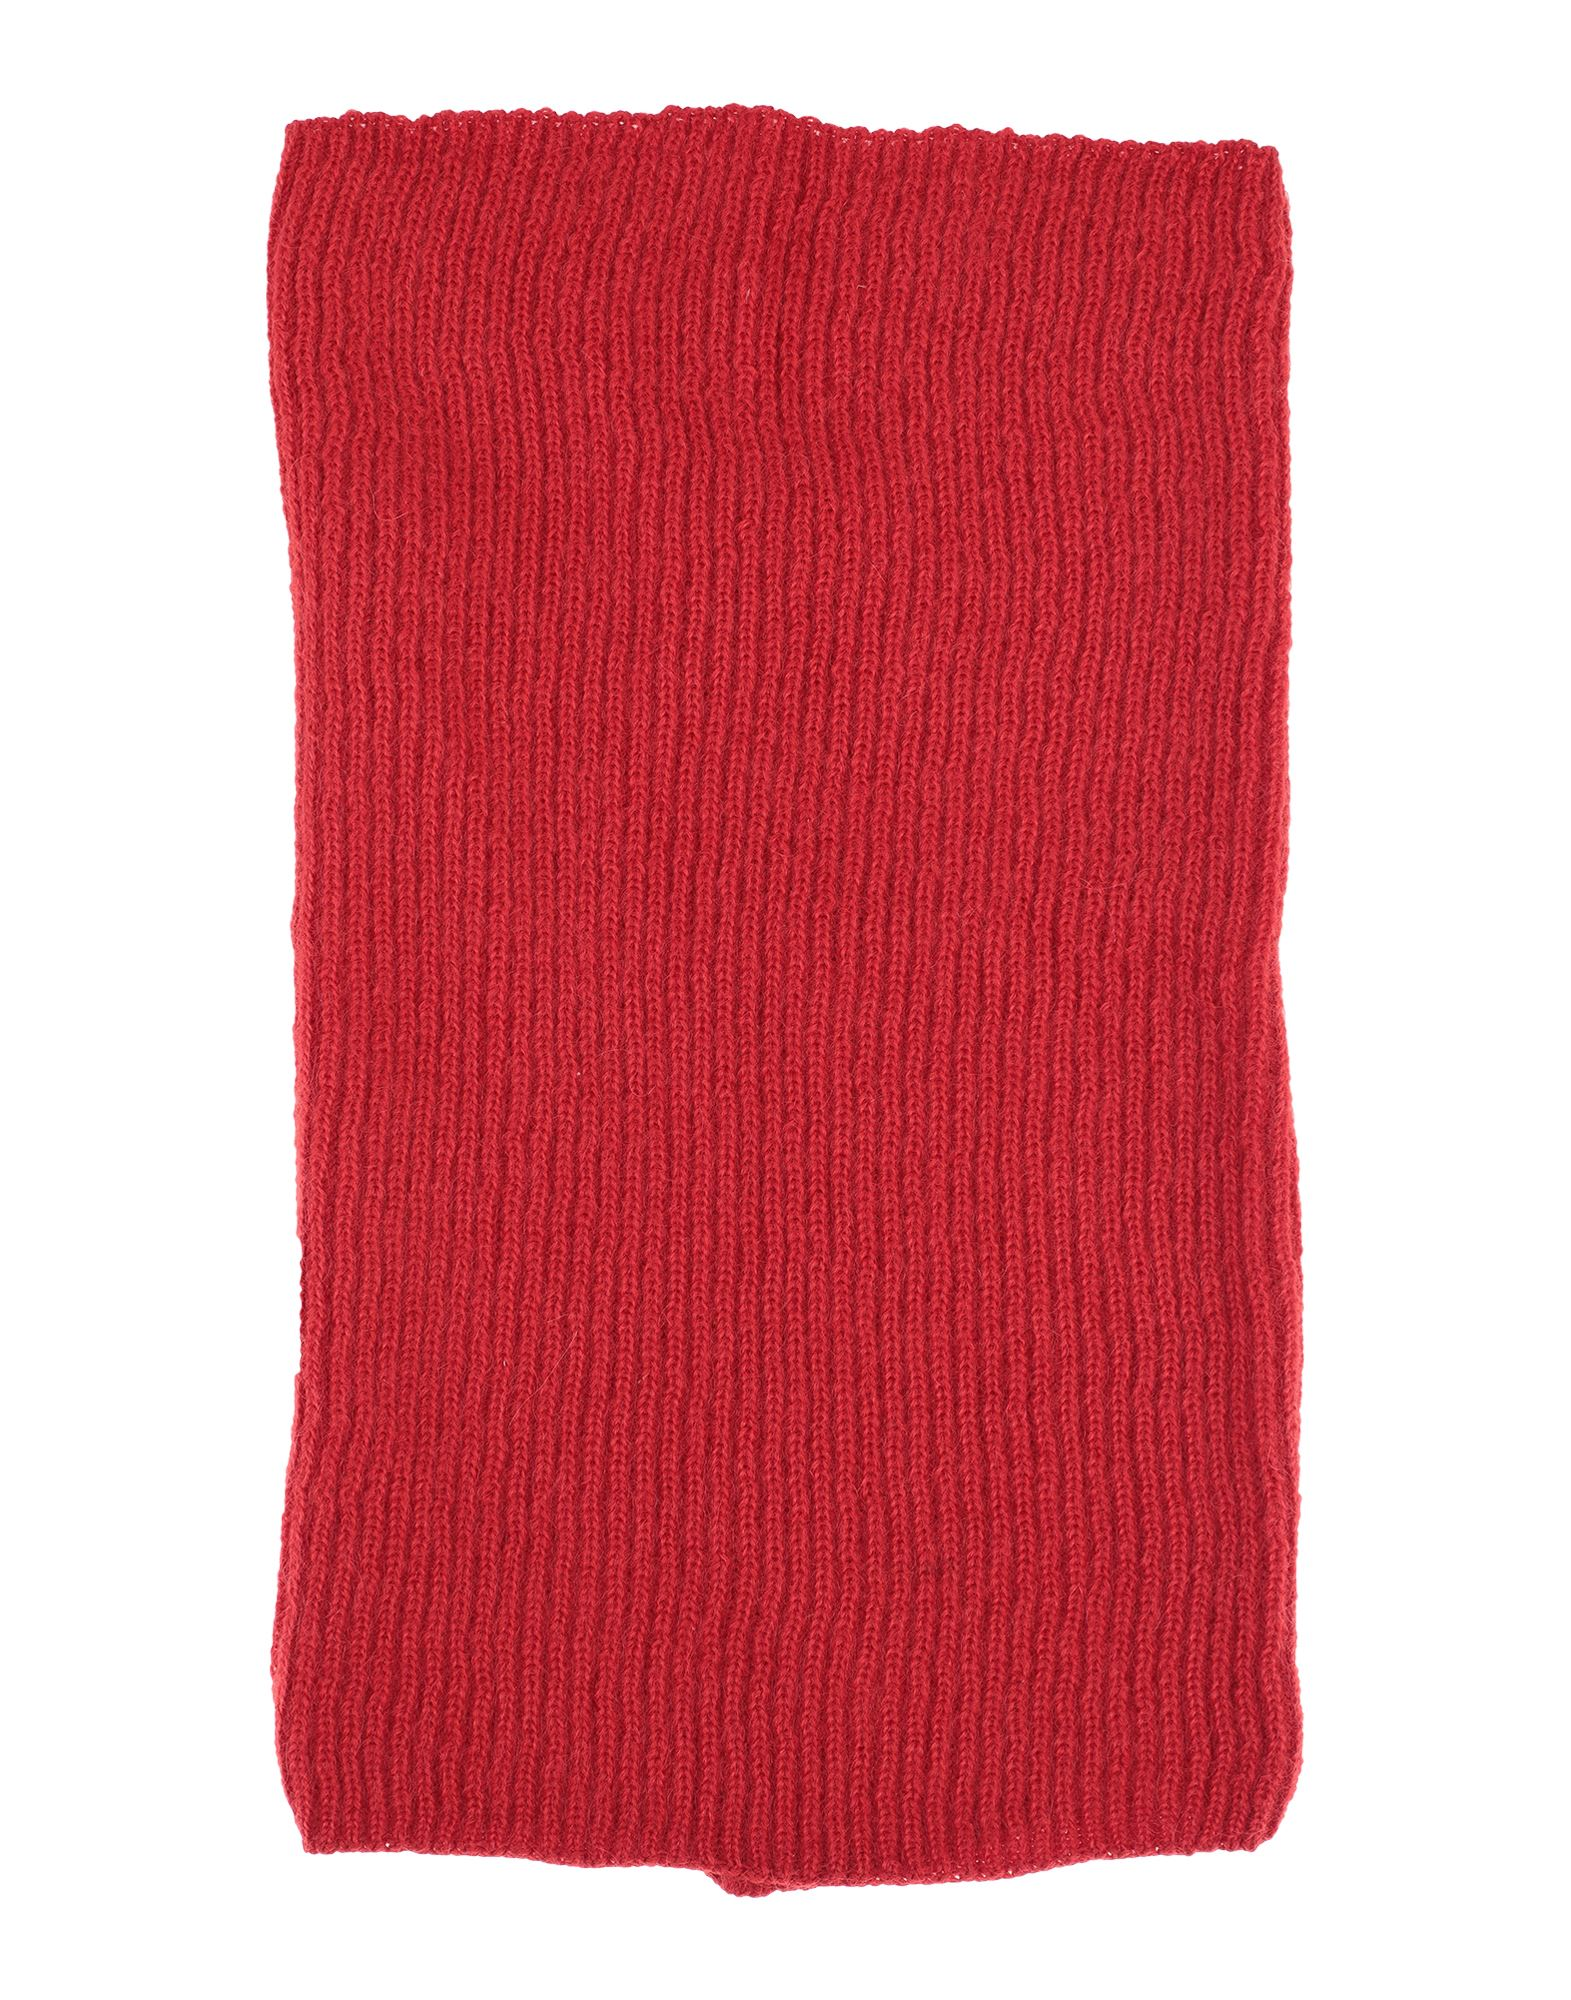 RICK OWENS Collars. knitted, no appliqués, basic solid color. 50% Virgin Wool, 34% Mohair wool, 16% Polyamide